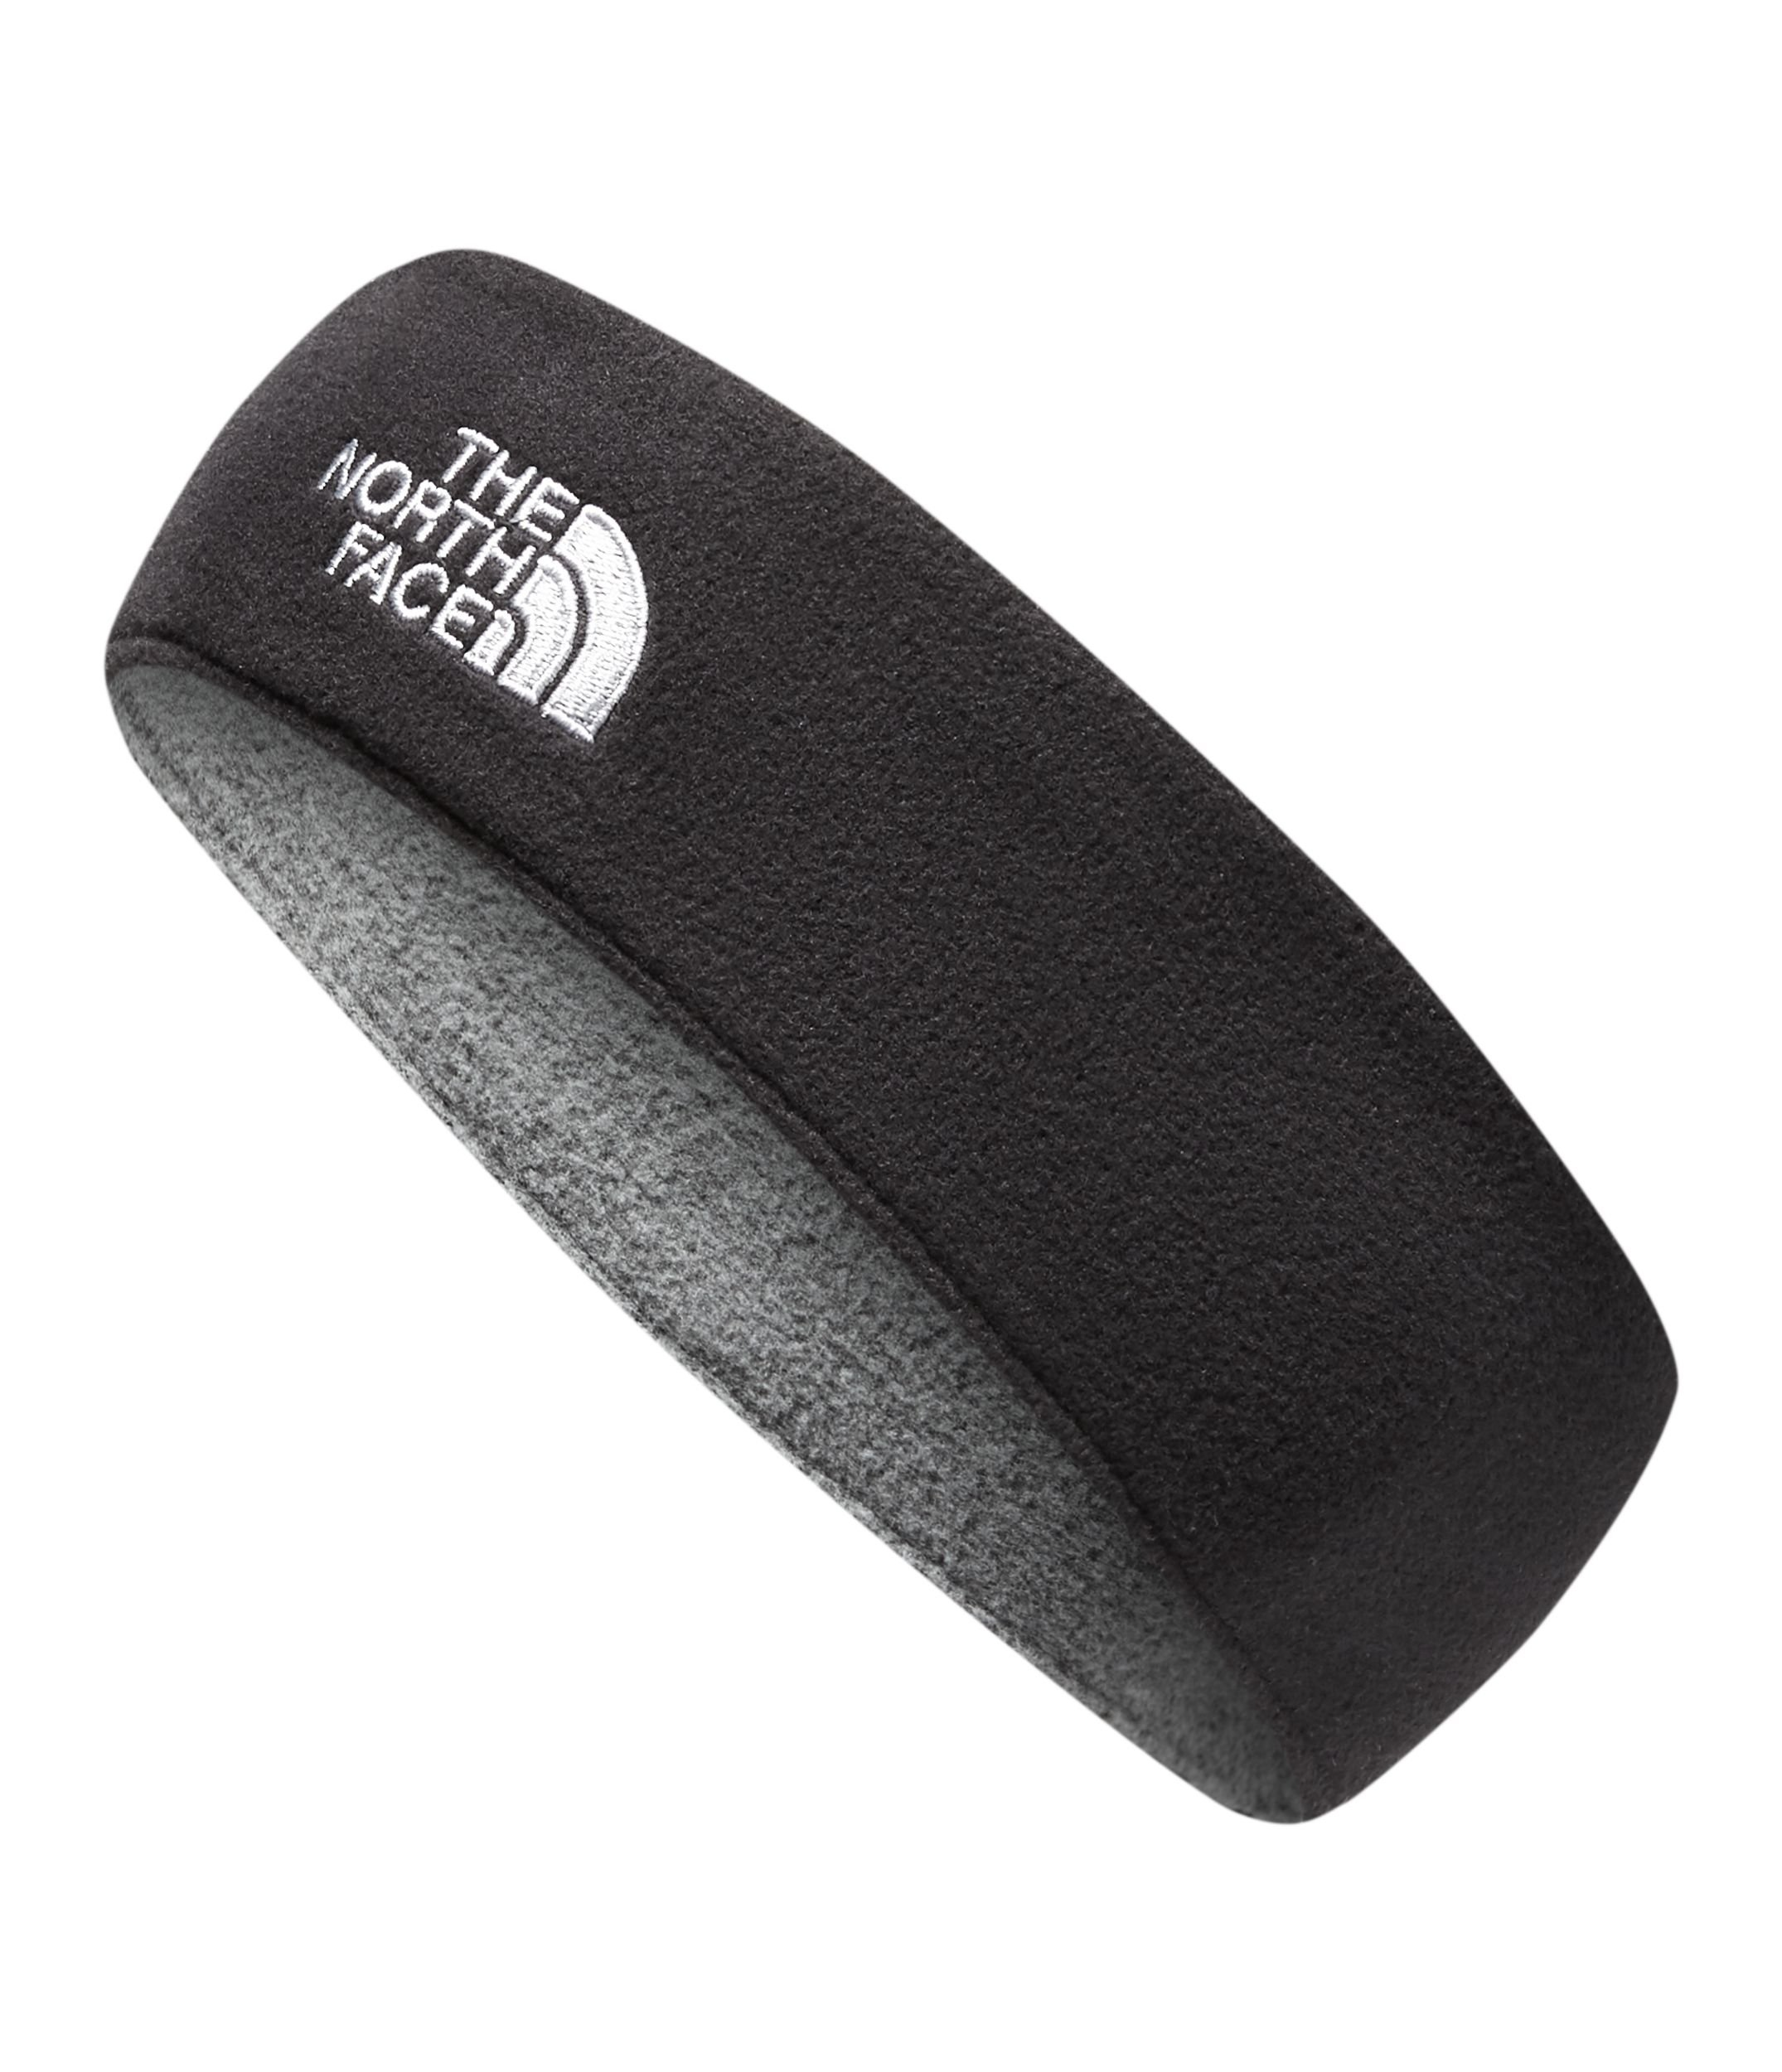 The North Face Kids Unisex Standard Issue Earband (Big Kids) TNF Black/TNF Medium Grey Heather MD